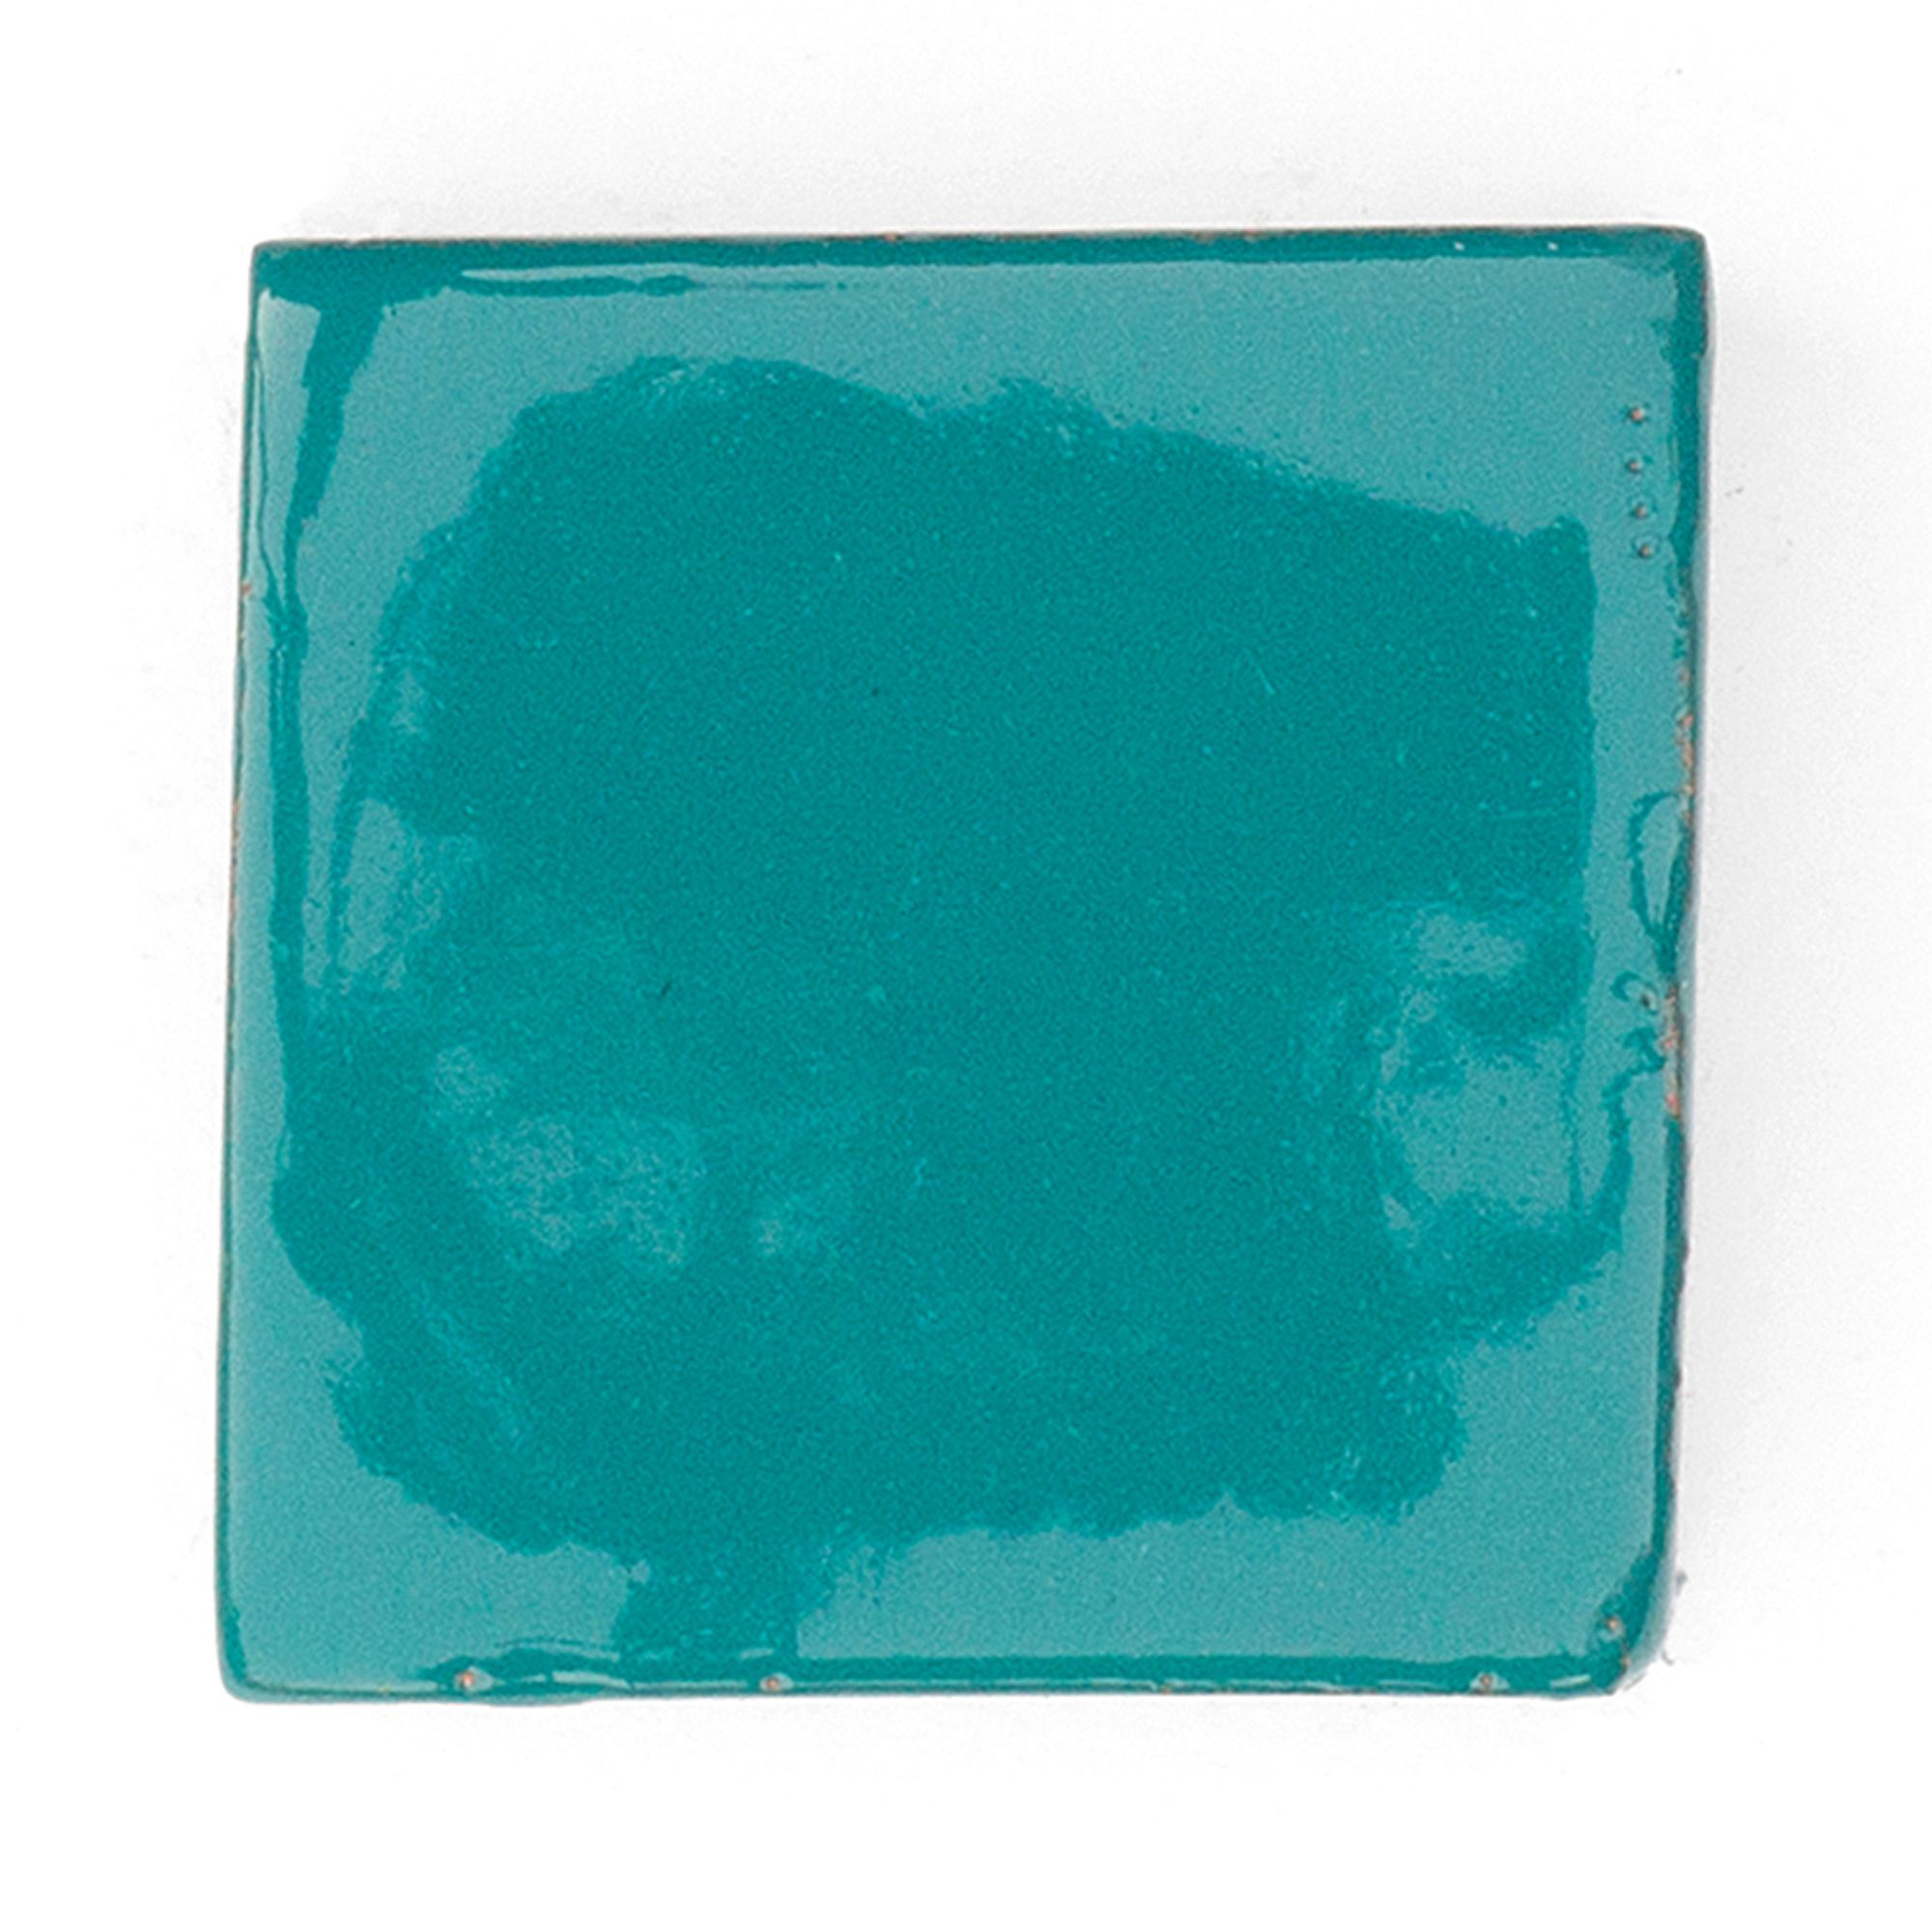 Teal g26 handmade ceramic tile by tiledesire available in teal g26 handmade ceramic tile by tiledesire available in different sizes and dailygadgetfo Image collections